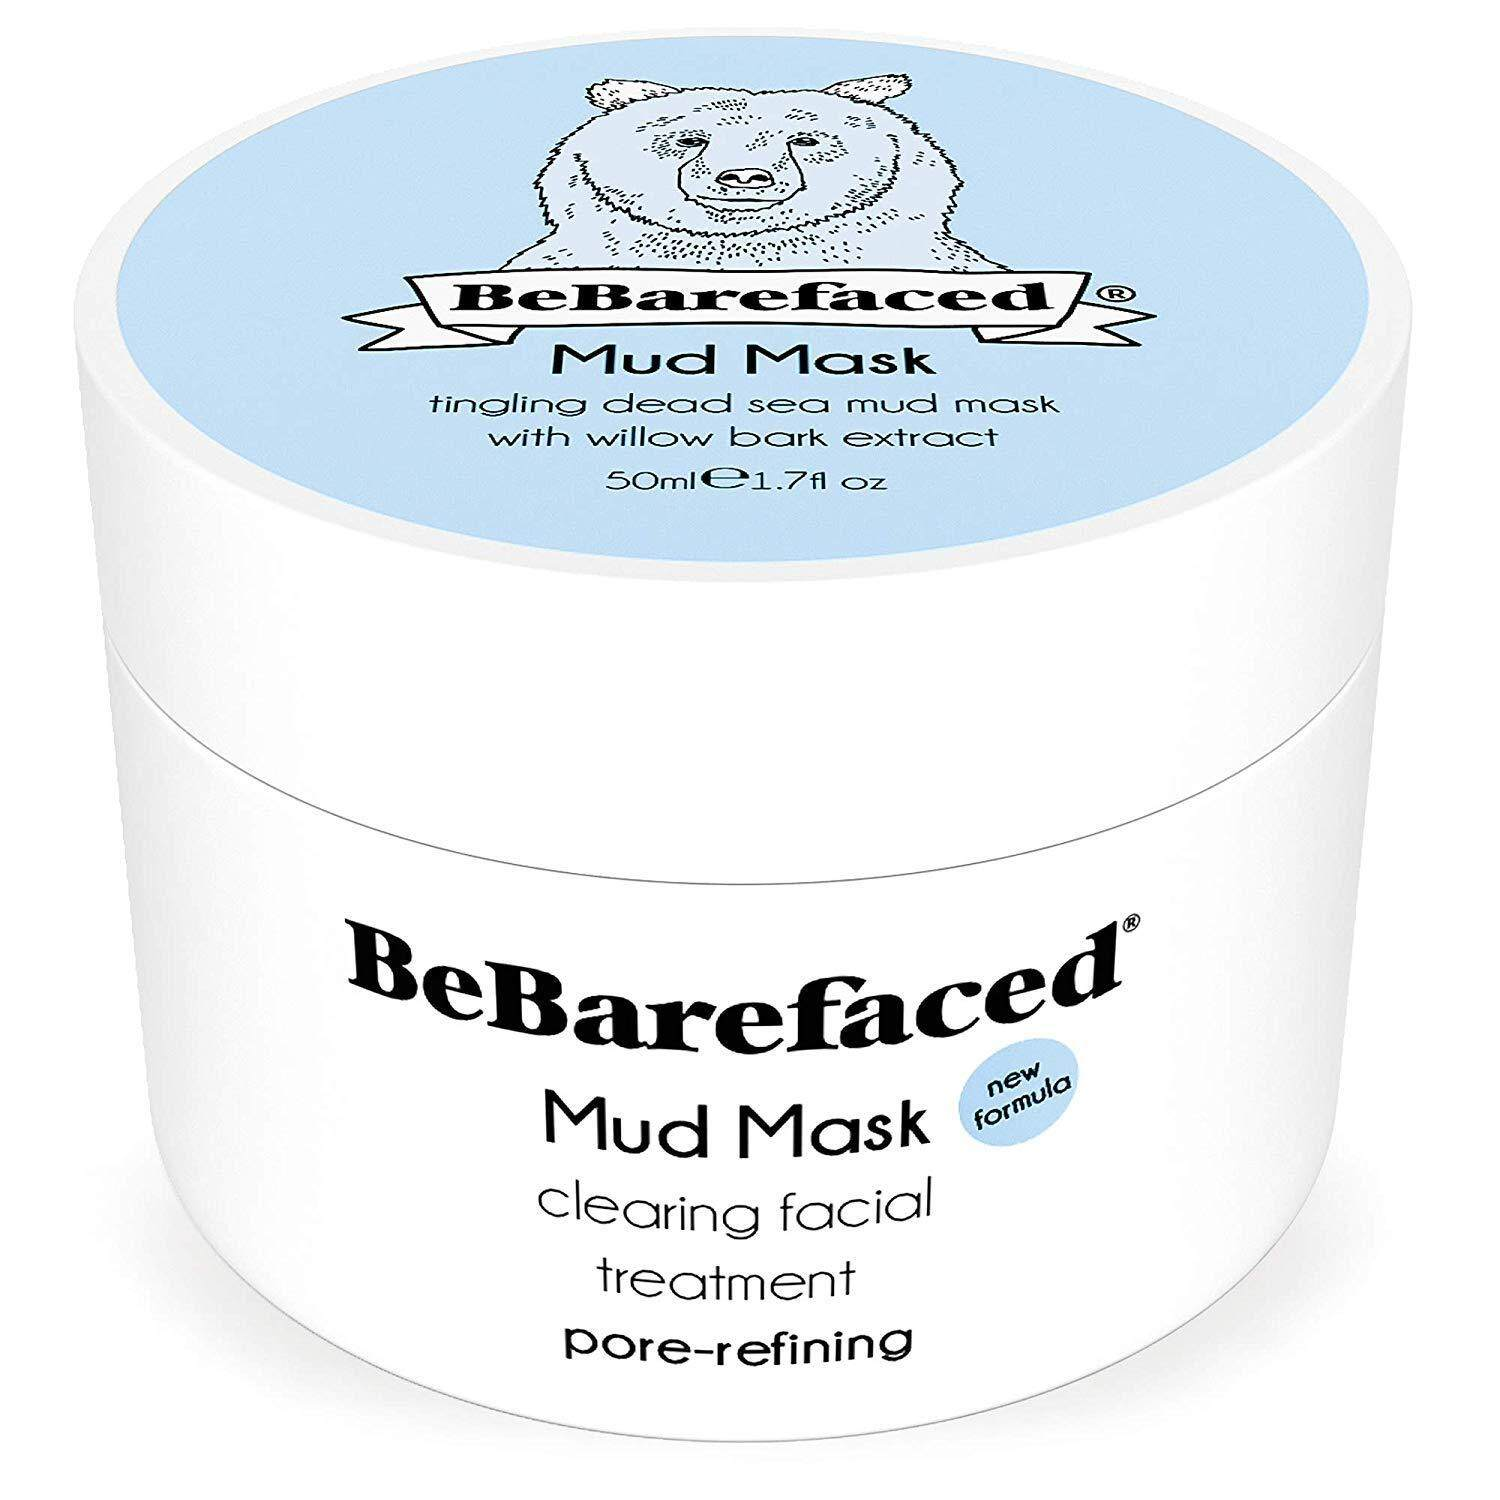 BeBarefaced Pore Refining Salicylic Blackhead and Acne Treatment Face Mask - Mud and Clay Anti Ageing Facial Mask with Salicylic Acid (BHA) and Willow Bark